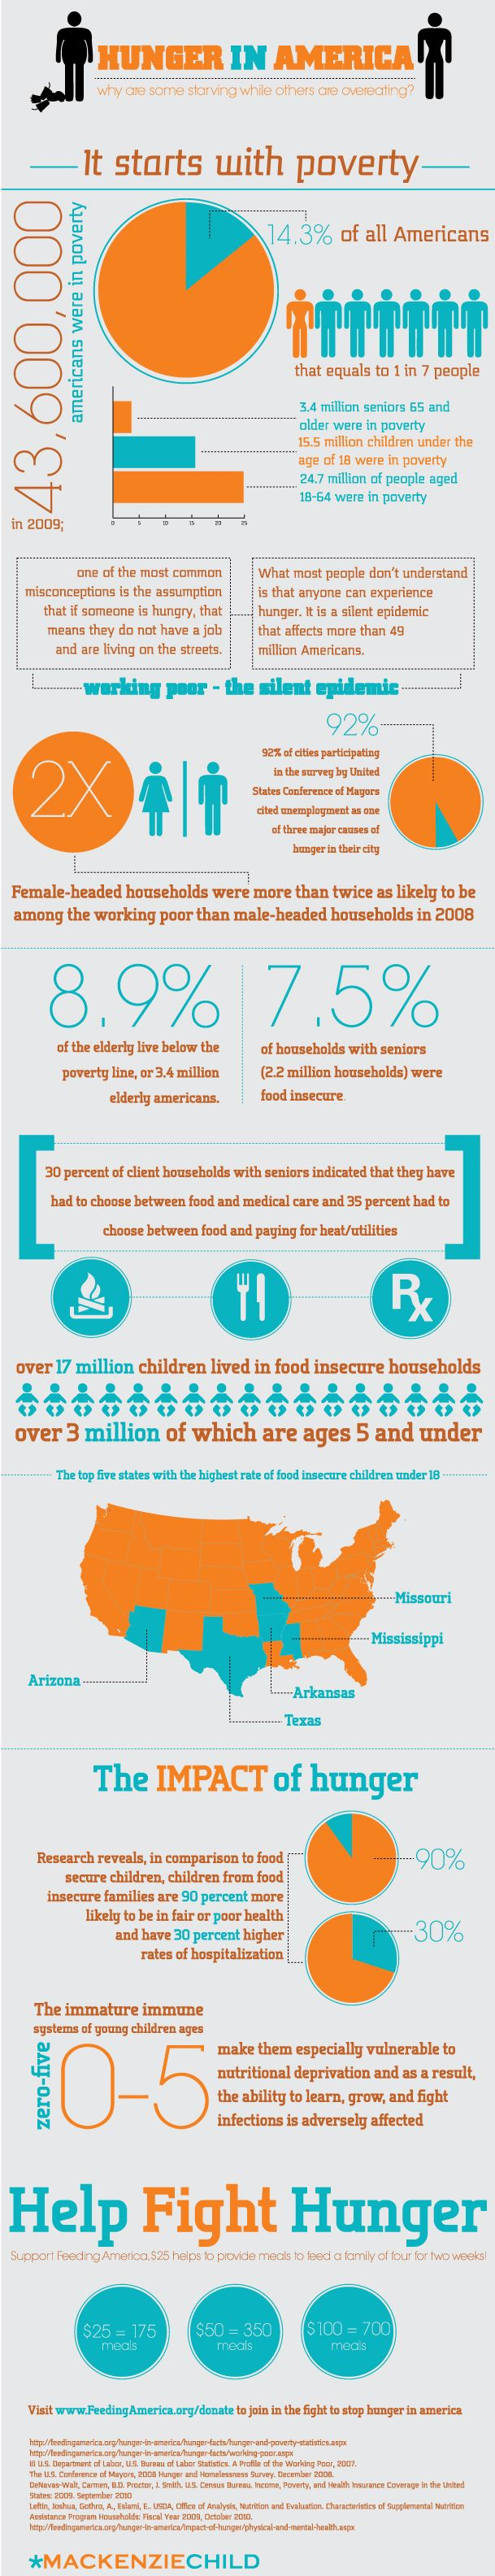 Hunger in America Infographic.